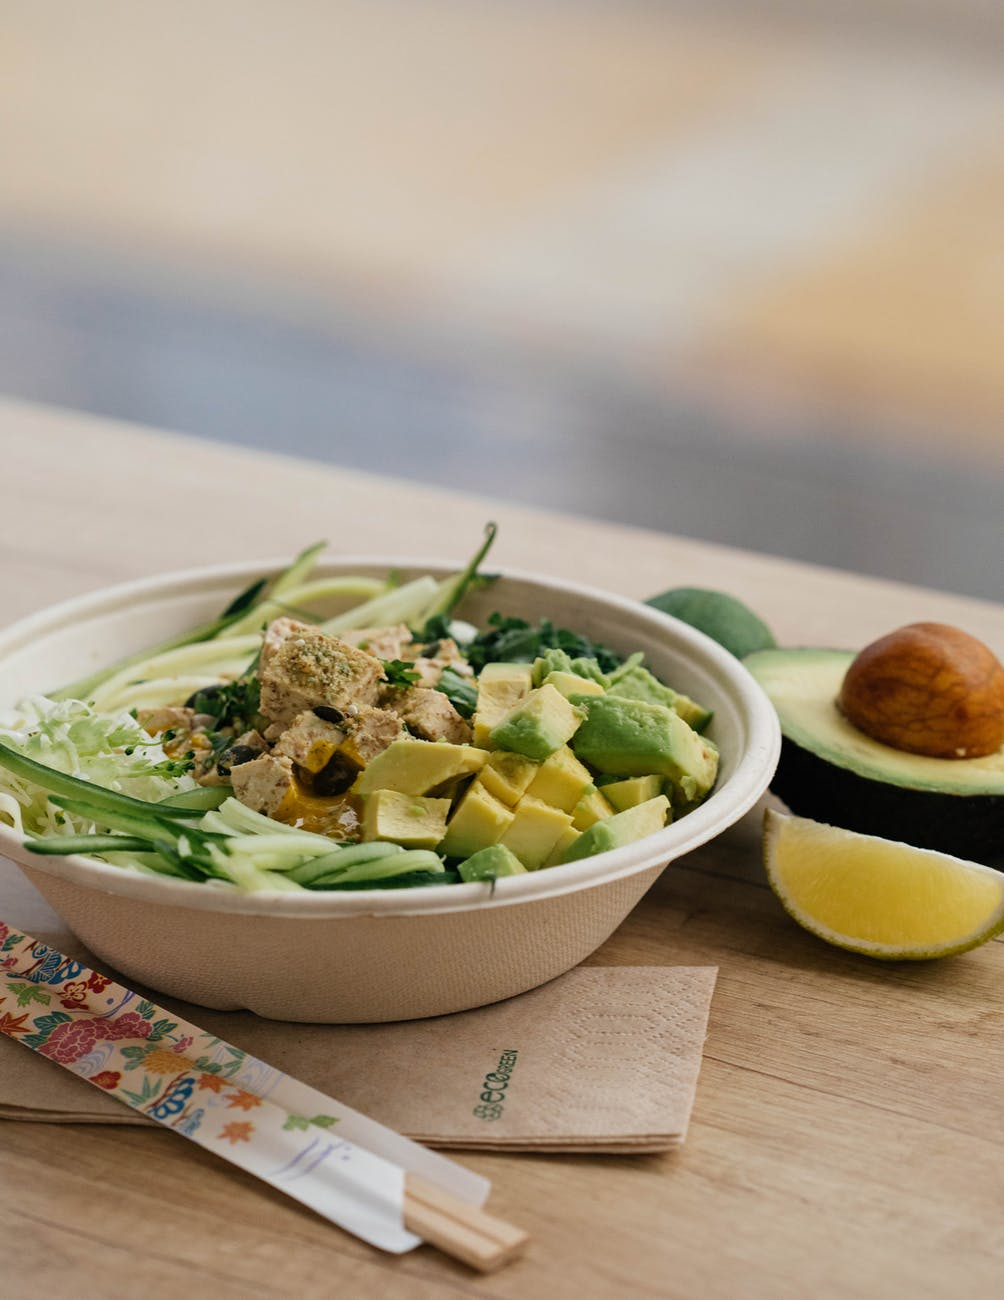 salad with sliced avocado in bowl